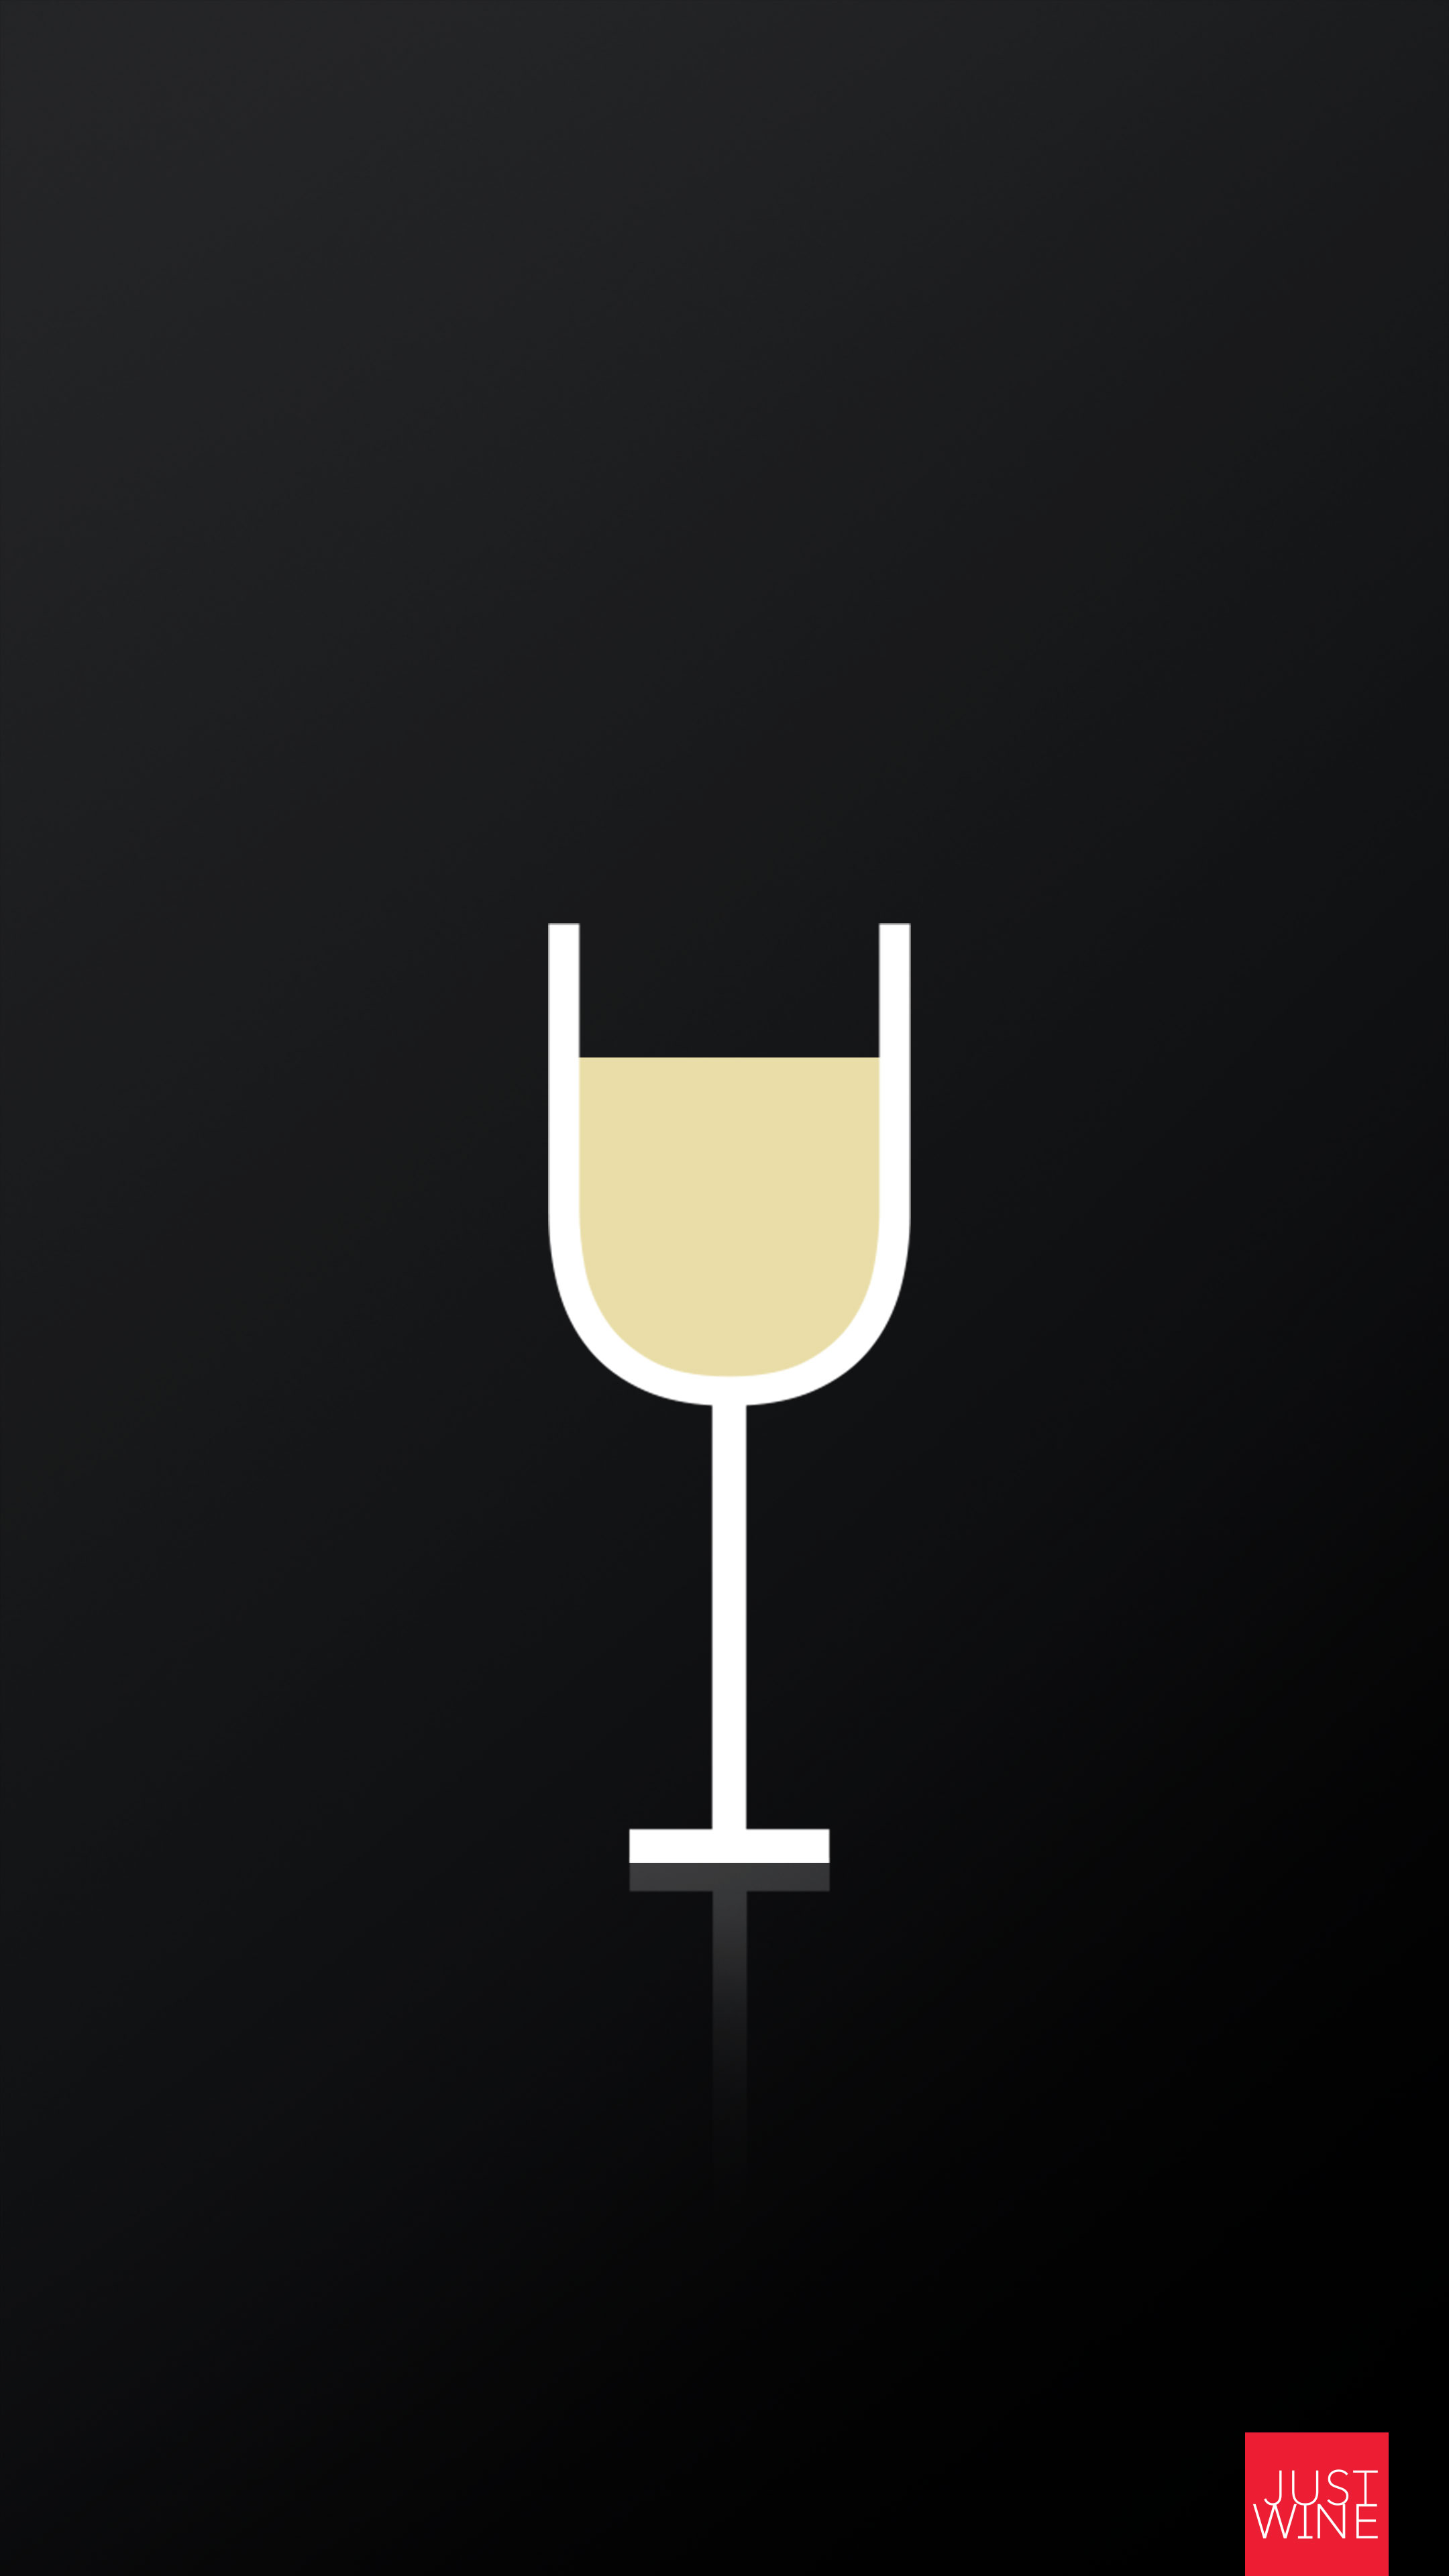 just-wine-mobile-wallpaper-background-iphone-white